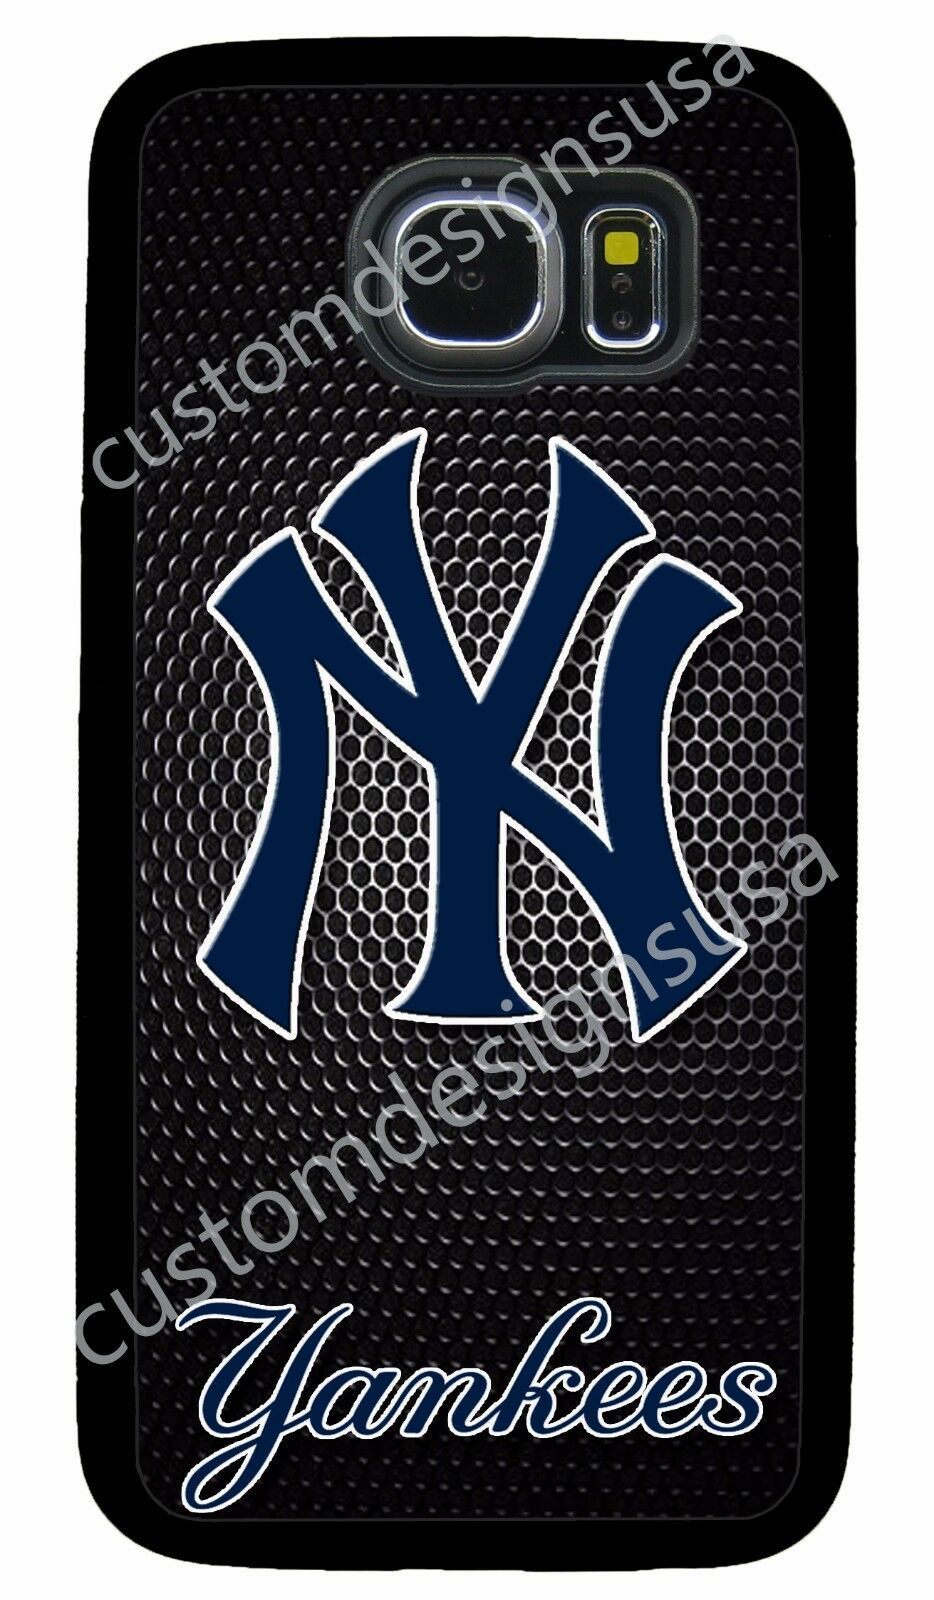 NEW YORK YANKEES MLB PHONE CASE FOR SAMSUNG NOTE & GALAXY S4 S5 S6 S7 S8 S9 S10